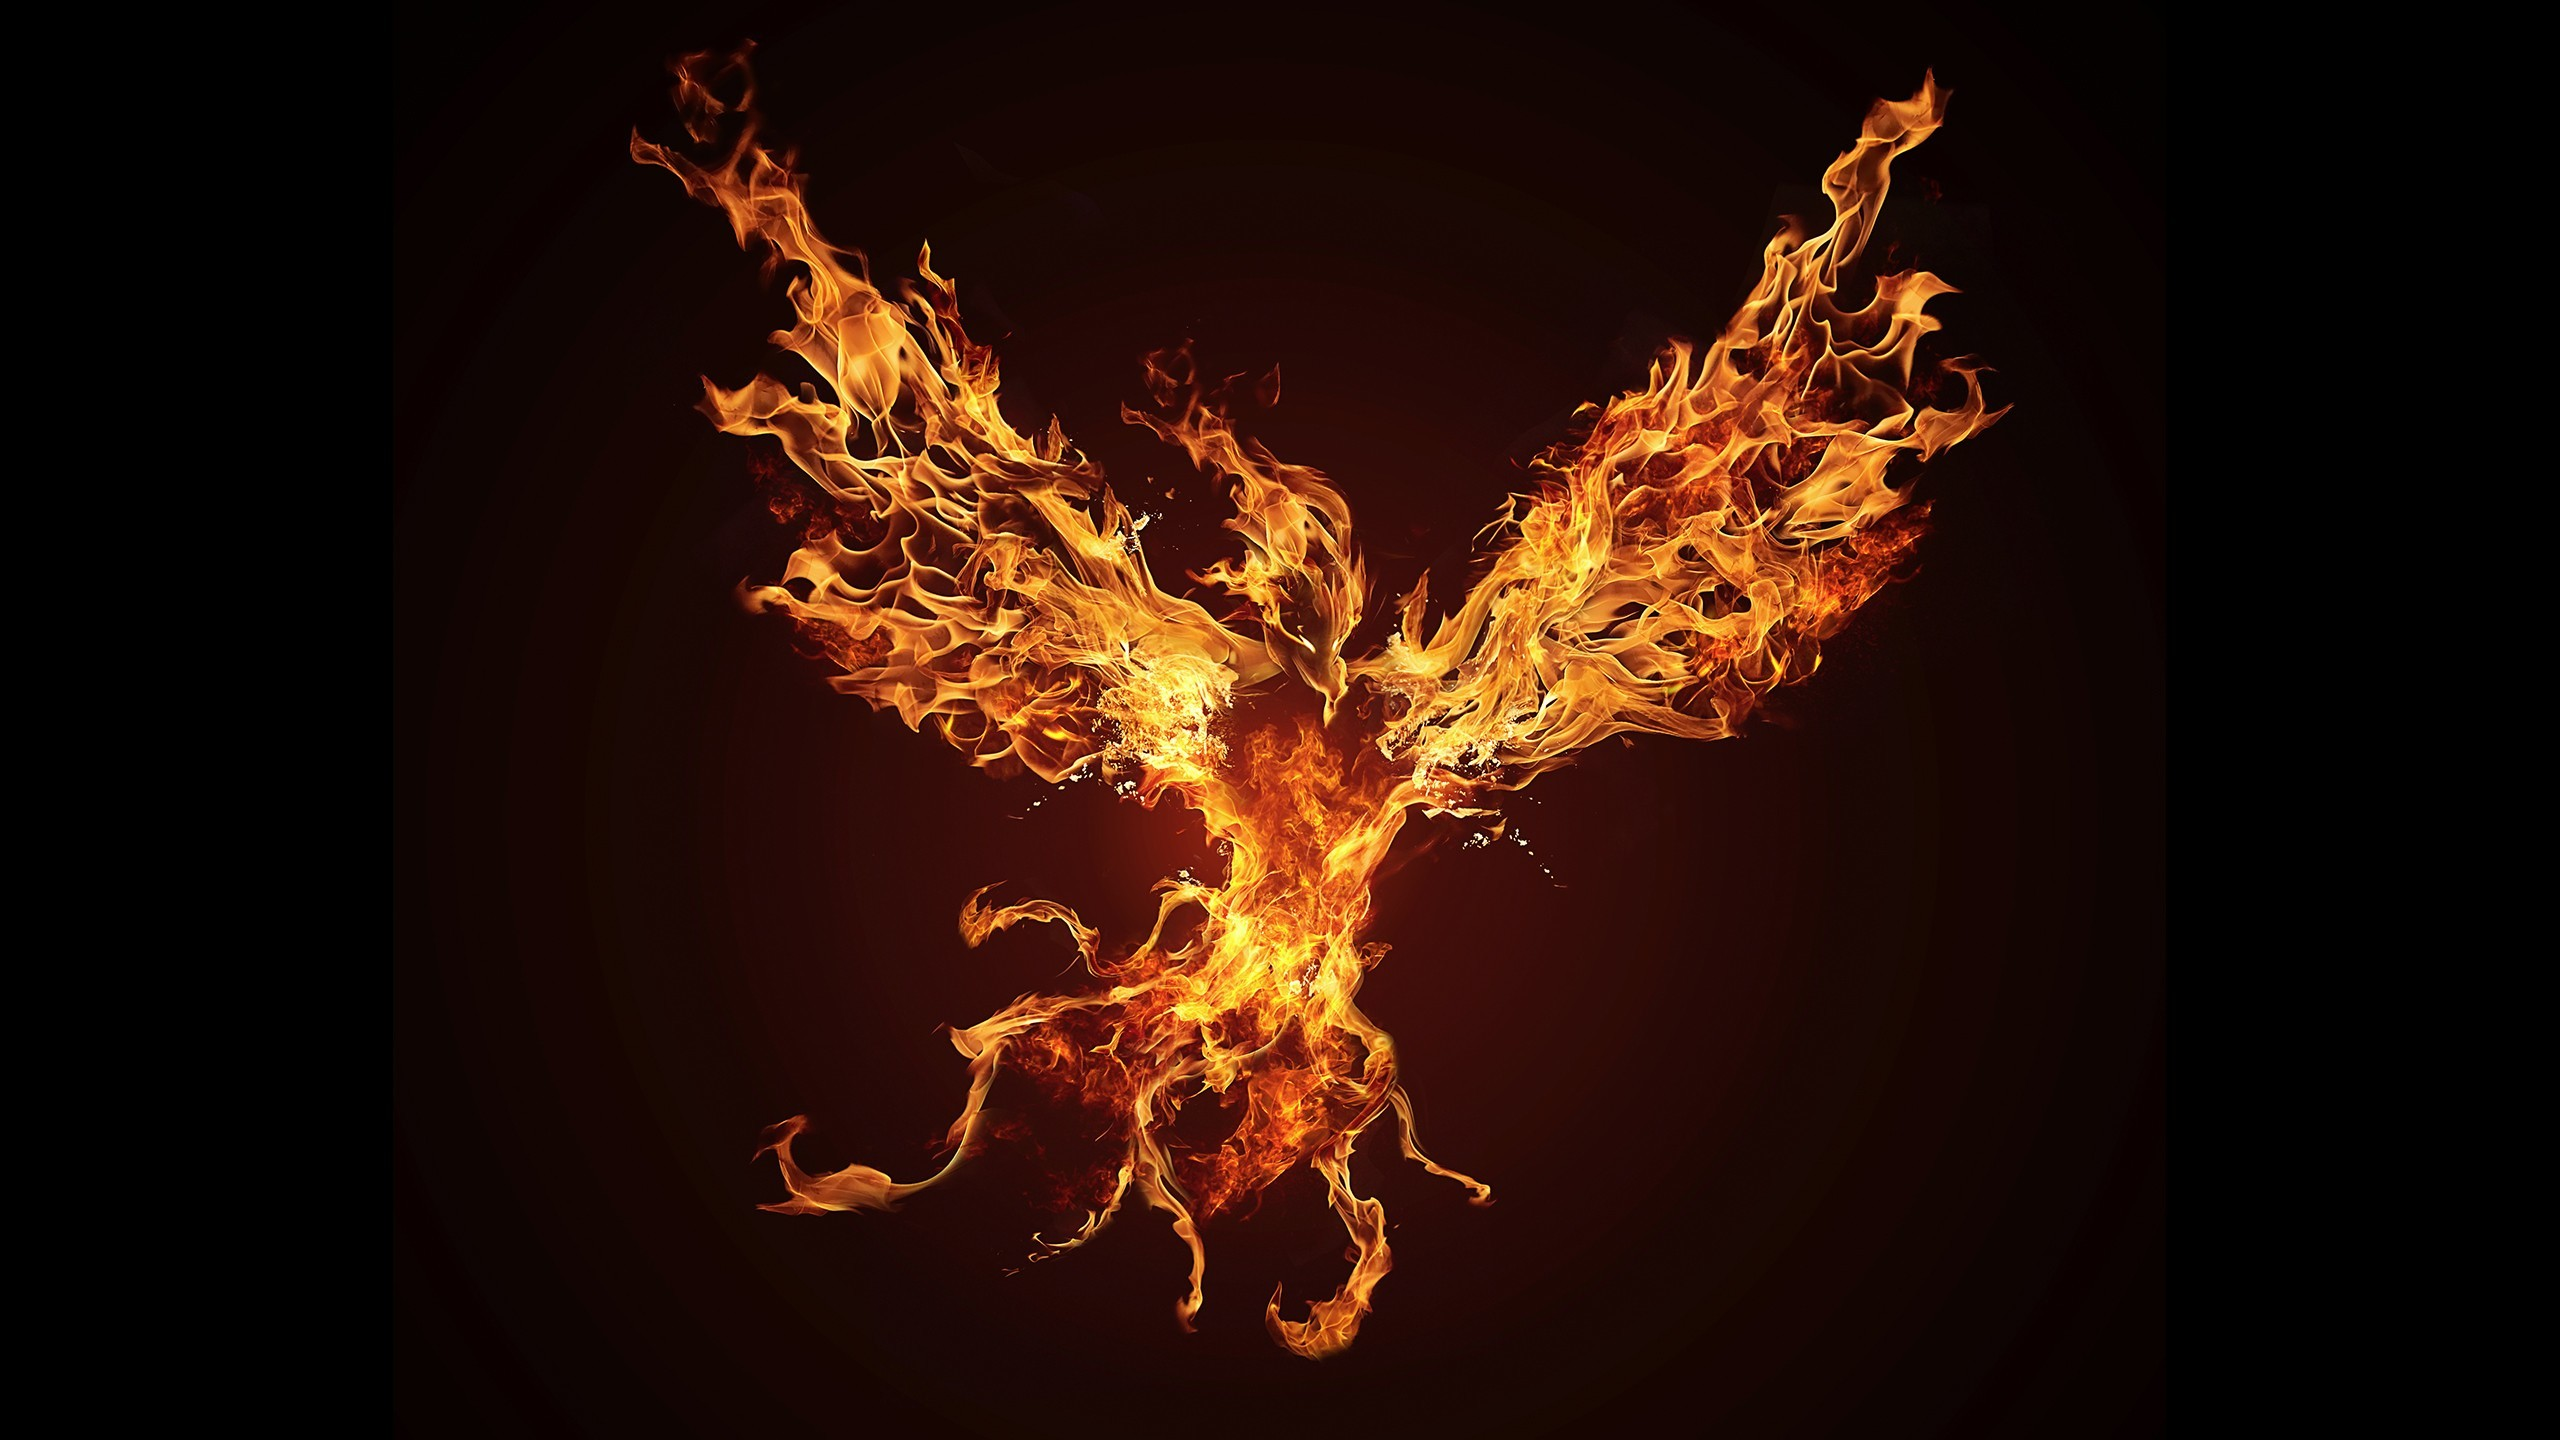 2560x1440  Fantasy Phoenix Wallpaper 14 Desktop Wallpaper Wallpaper